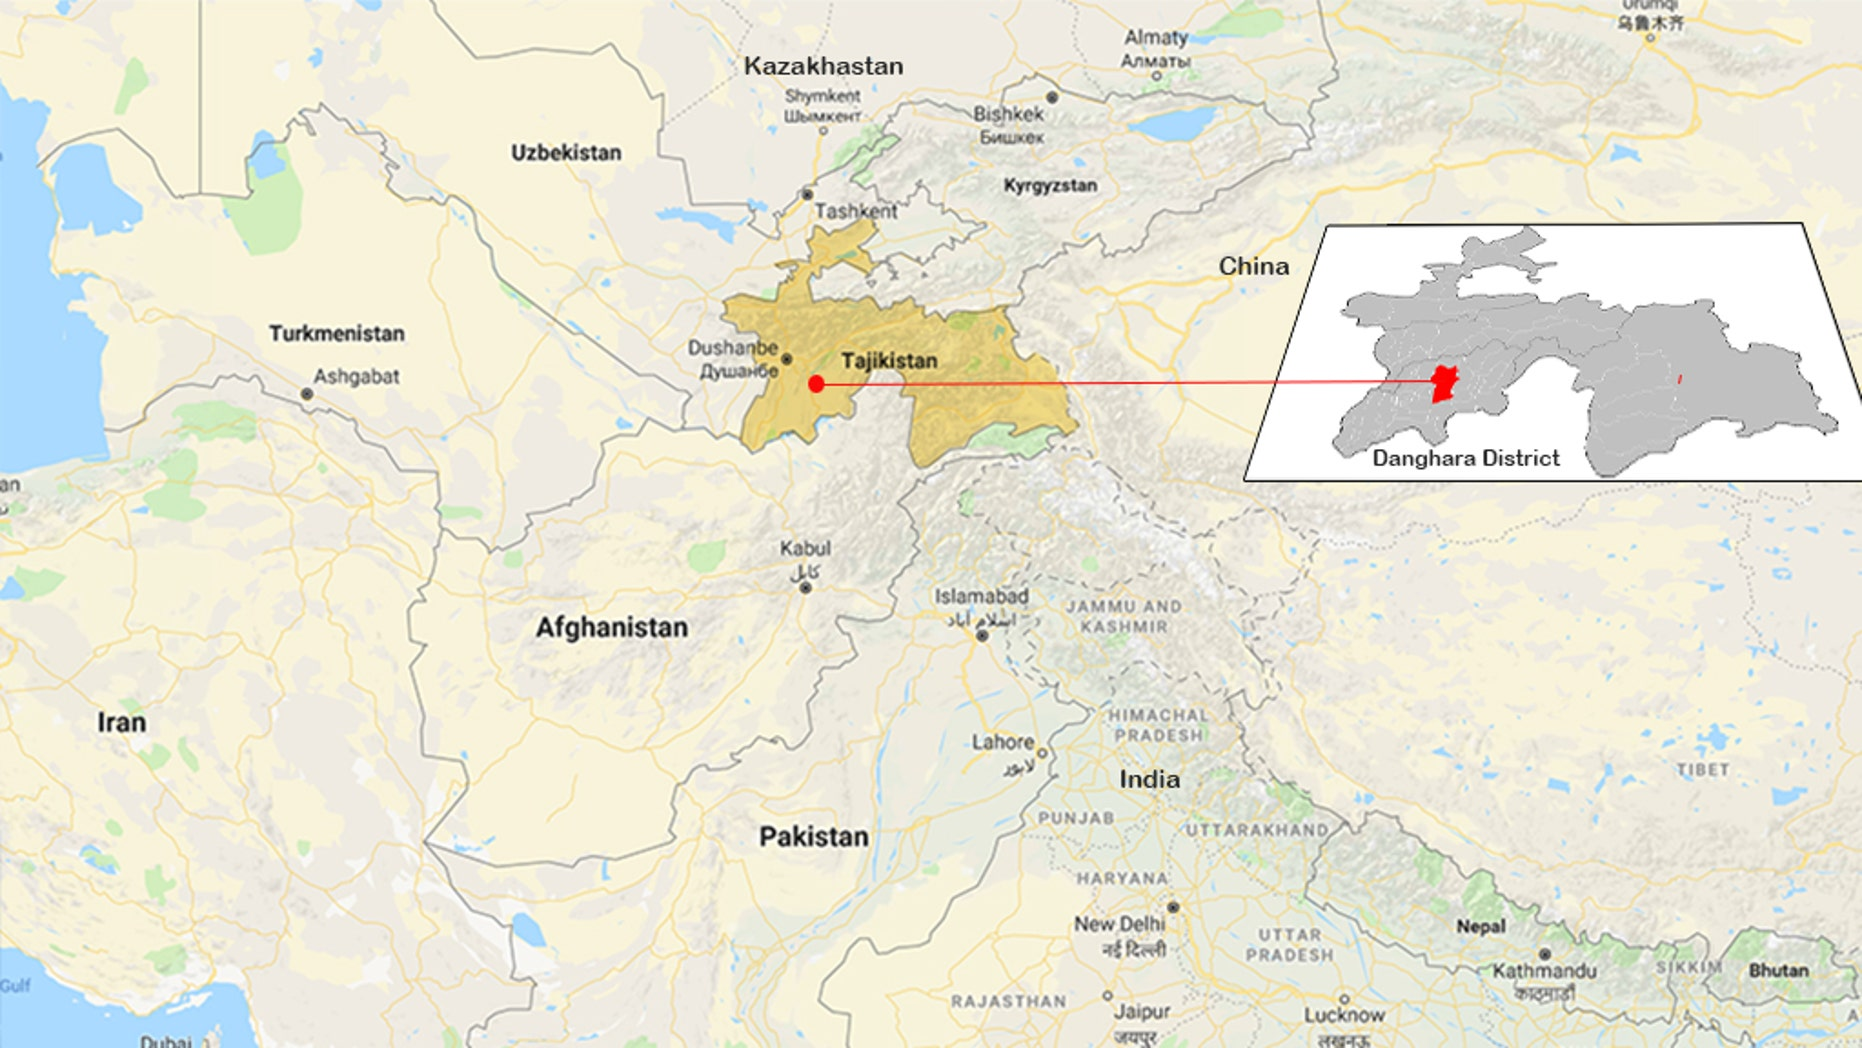 The Islamic State group claimed responsibility for an attack on Western tourists in Tajikistan.